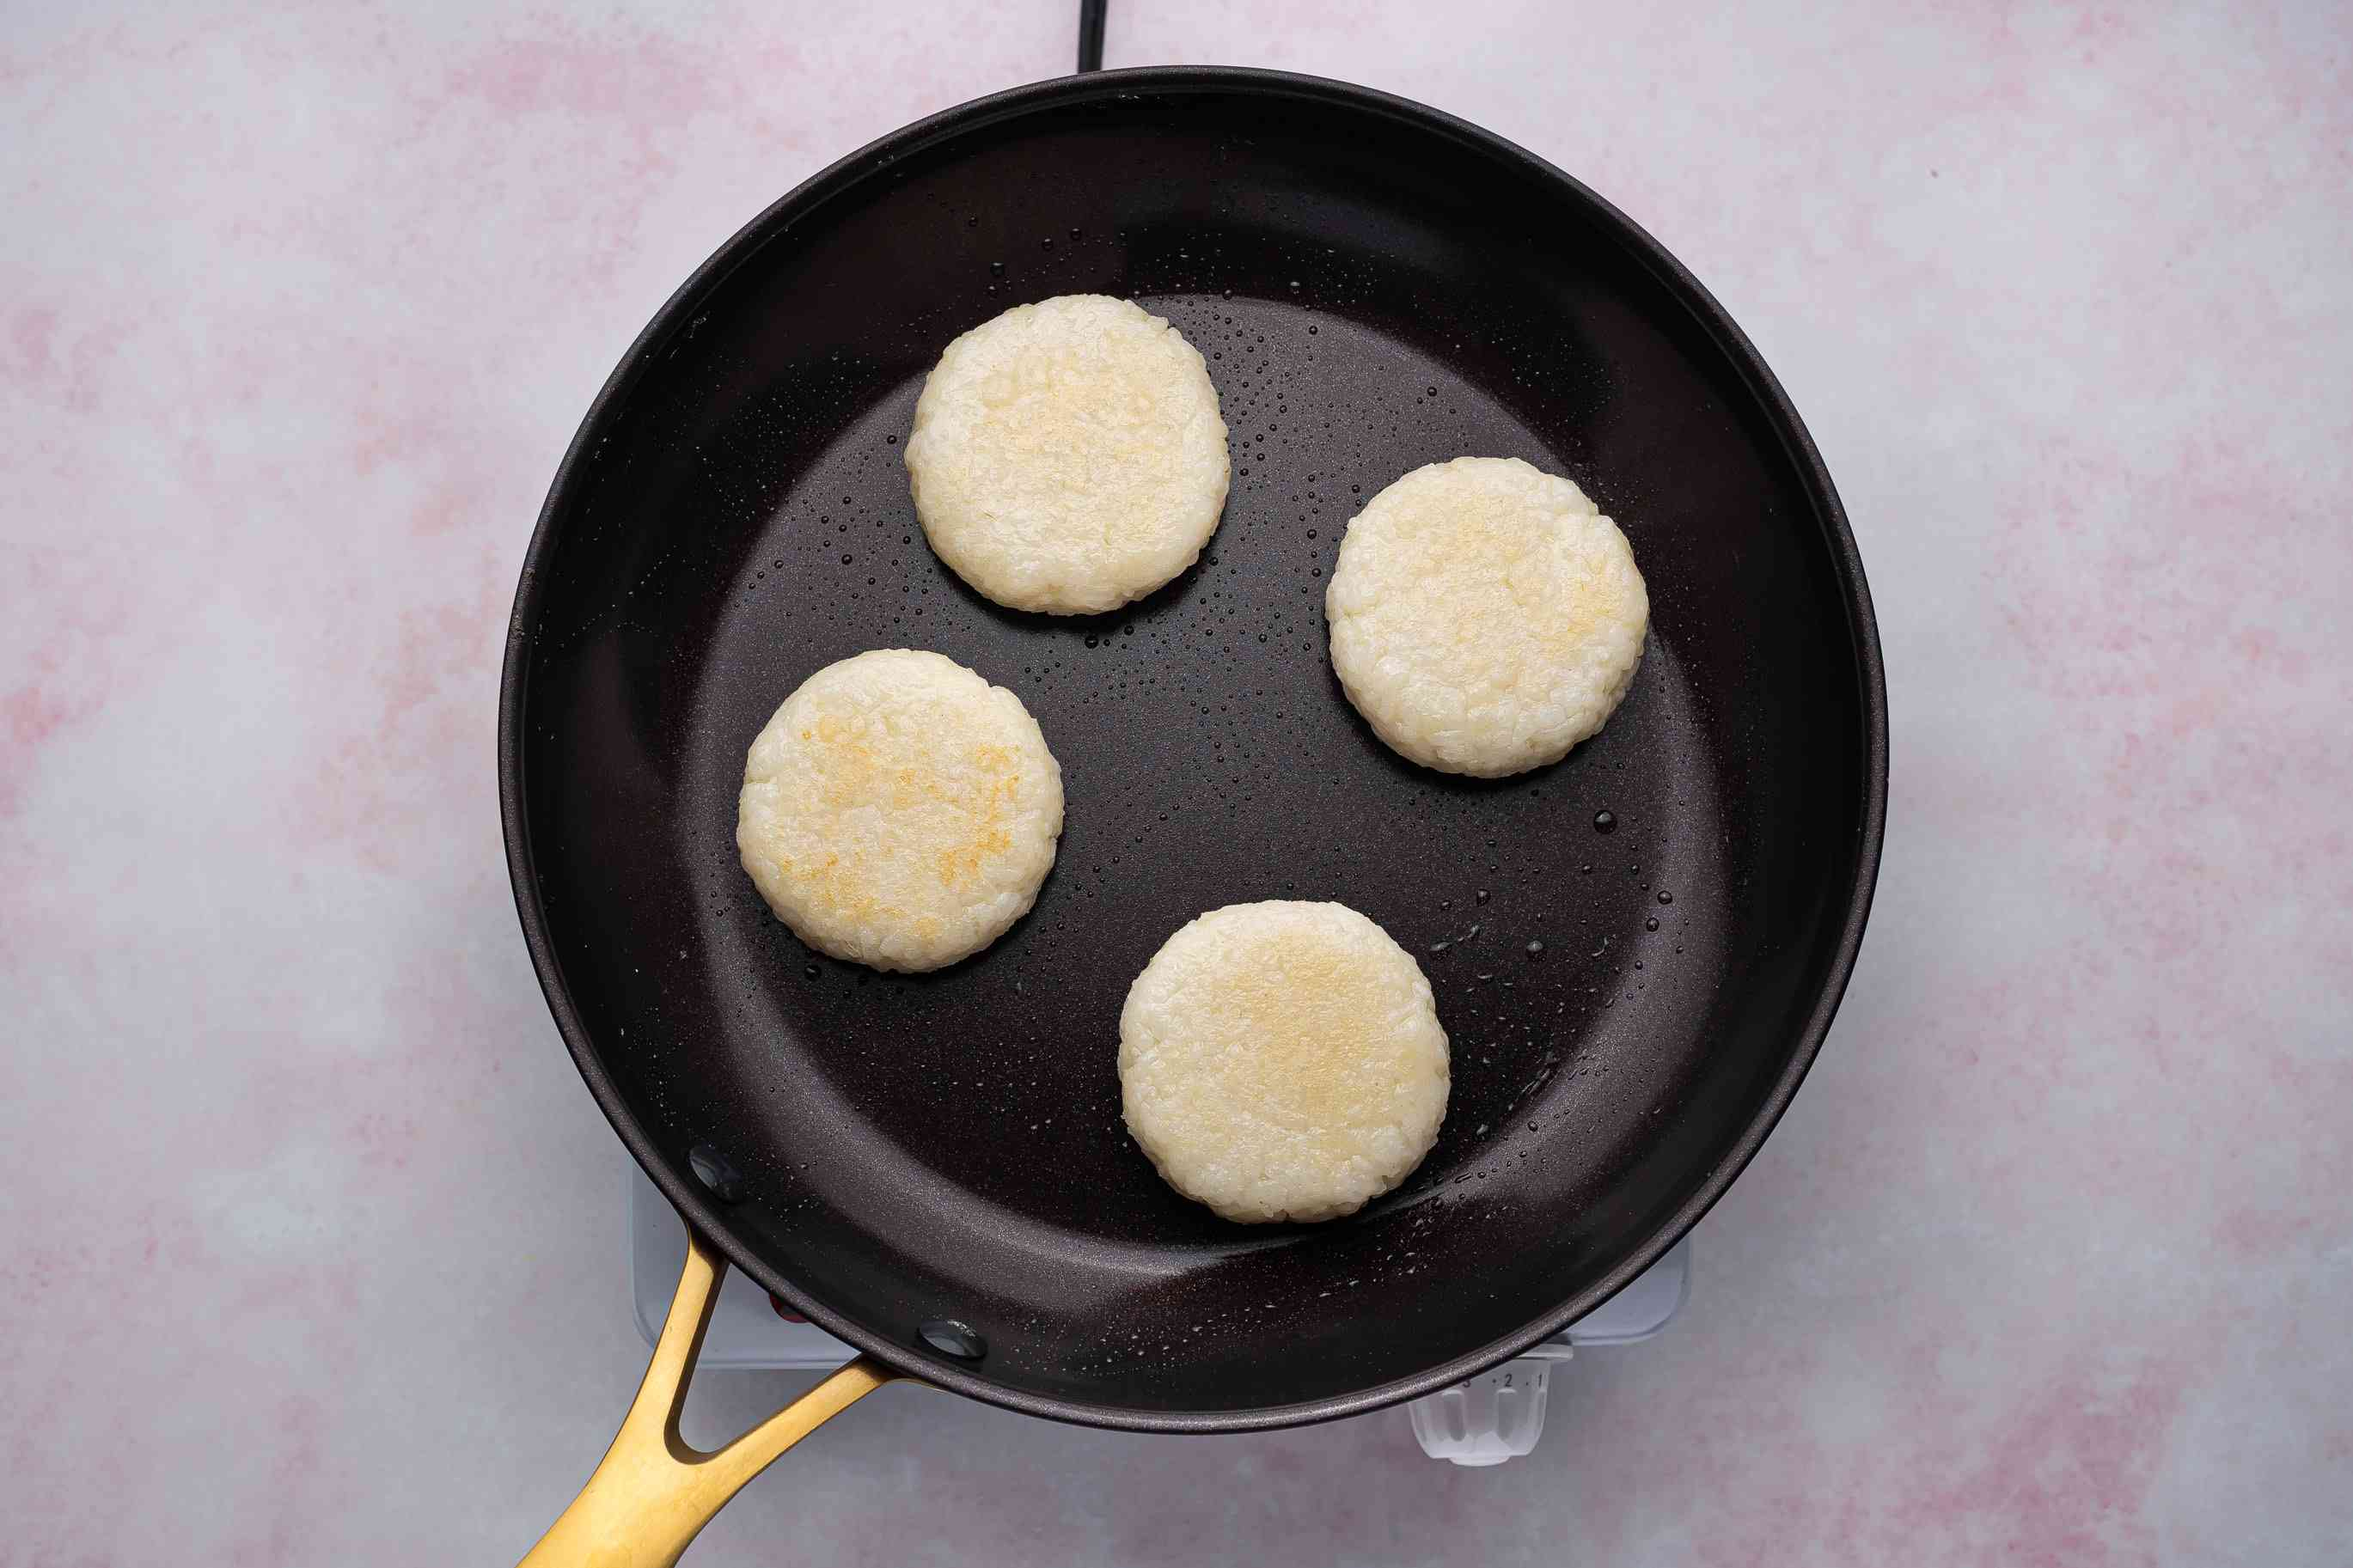 rice cakes cooking in a skillet